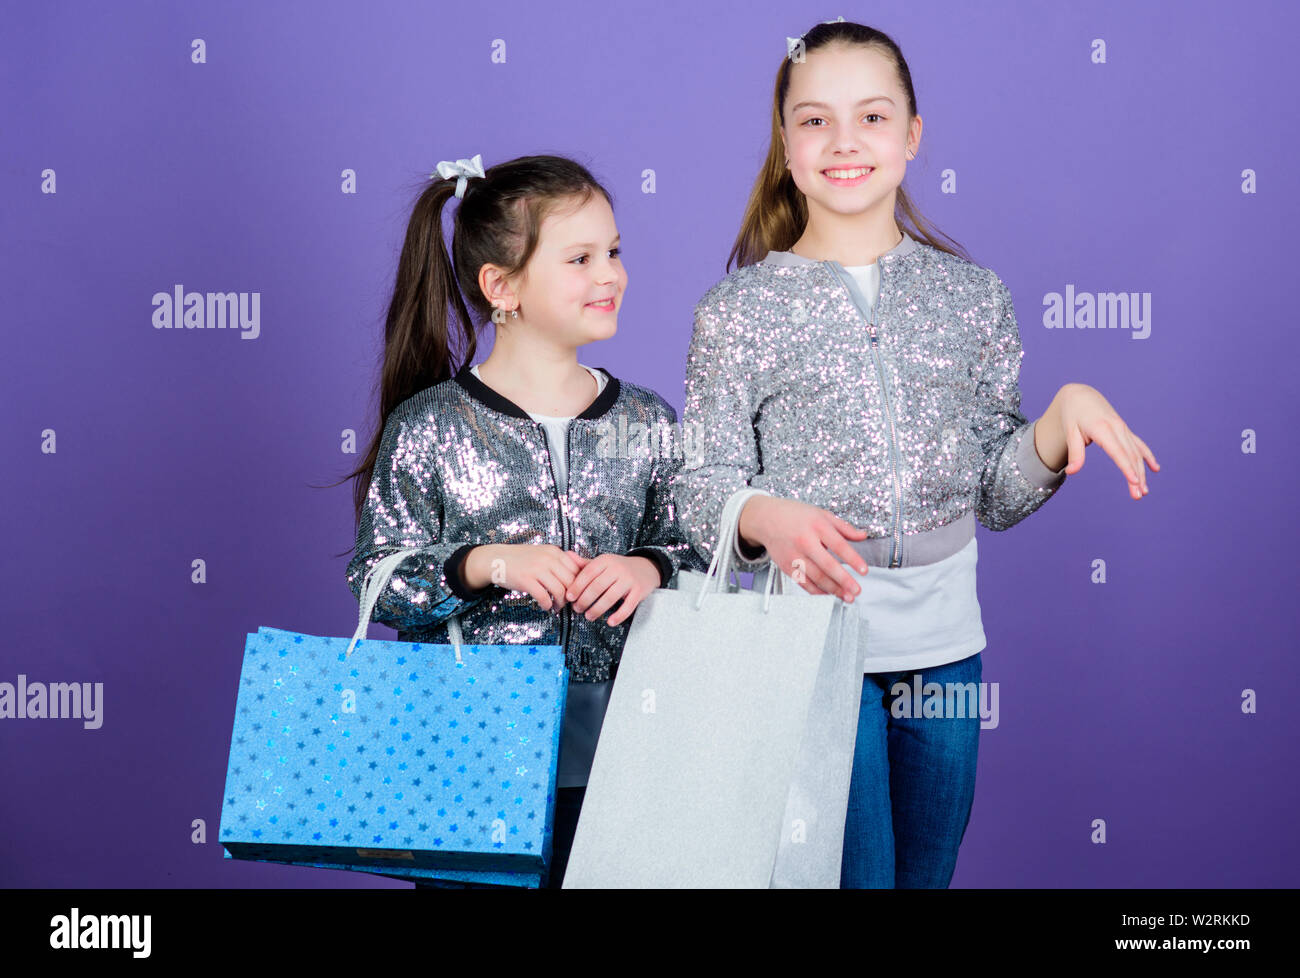 Discover something new. Girls sisters friends with shopping bags violet background. Shopping and purchase. Black friday. Sale and discount. Shopping day. Children bunch packages. Kids fashion. - Stock Image